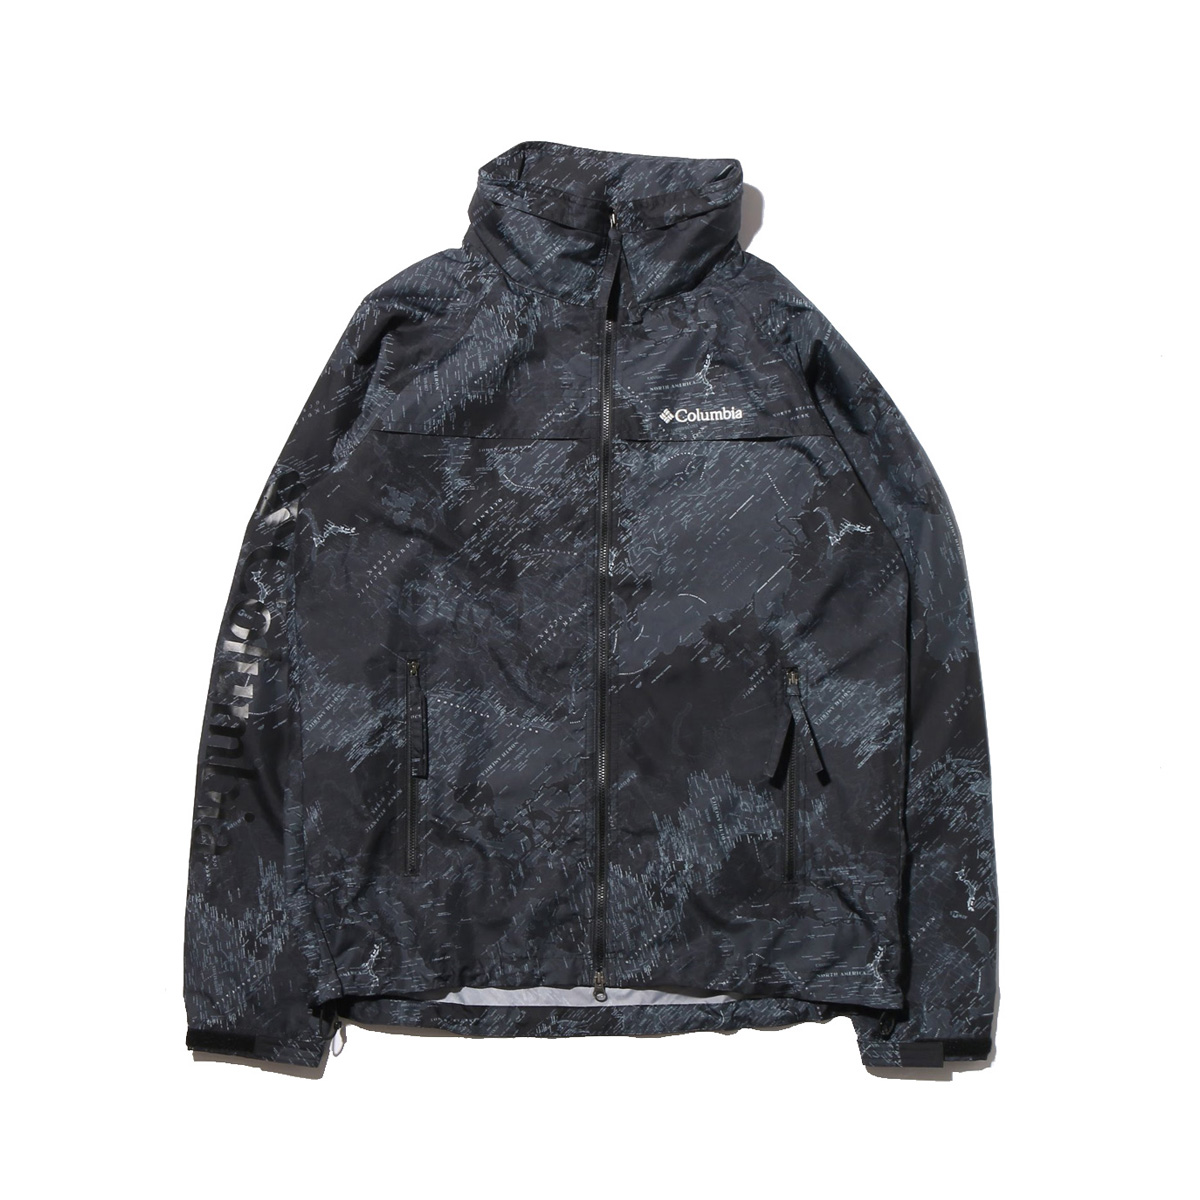 Columbia × ATMOS LAB Sawtooth Jacket